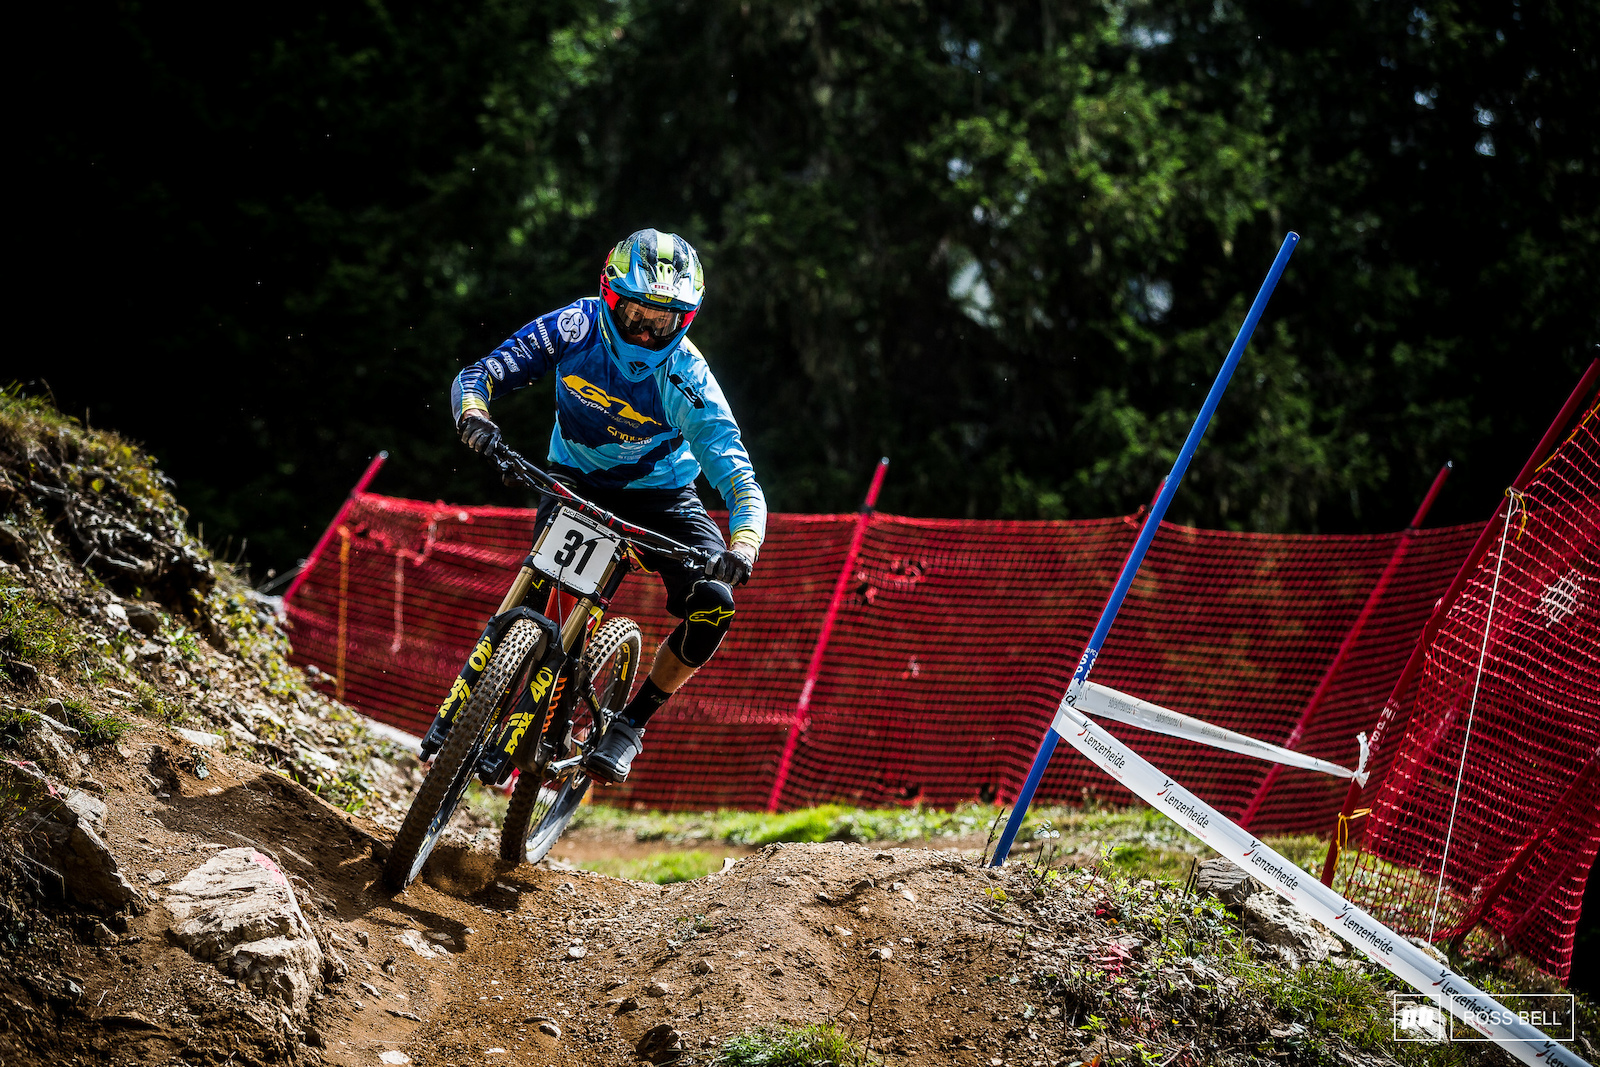 After springing one of the biggest surprises downhill racing has ever seen Martin Maes will be hungry to get his hands on a medal.